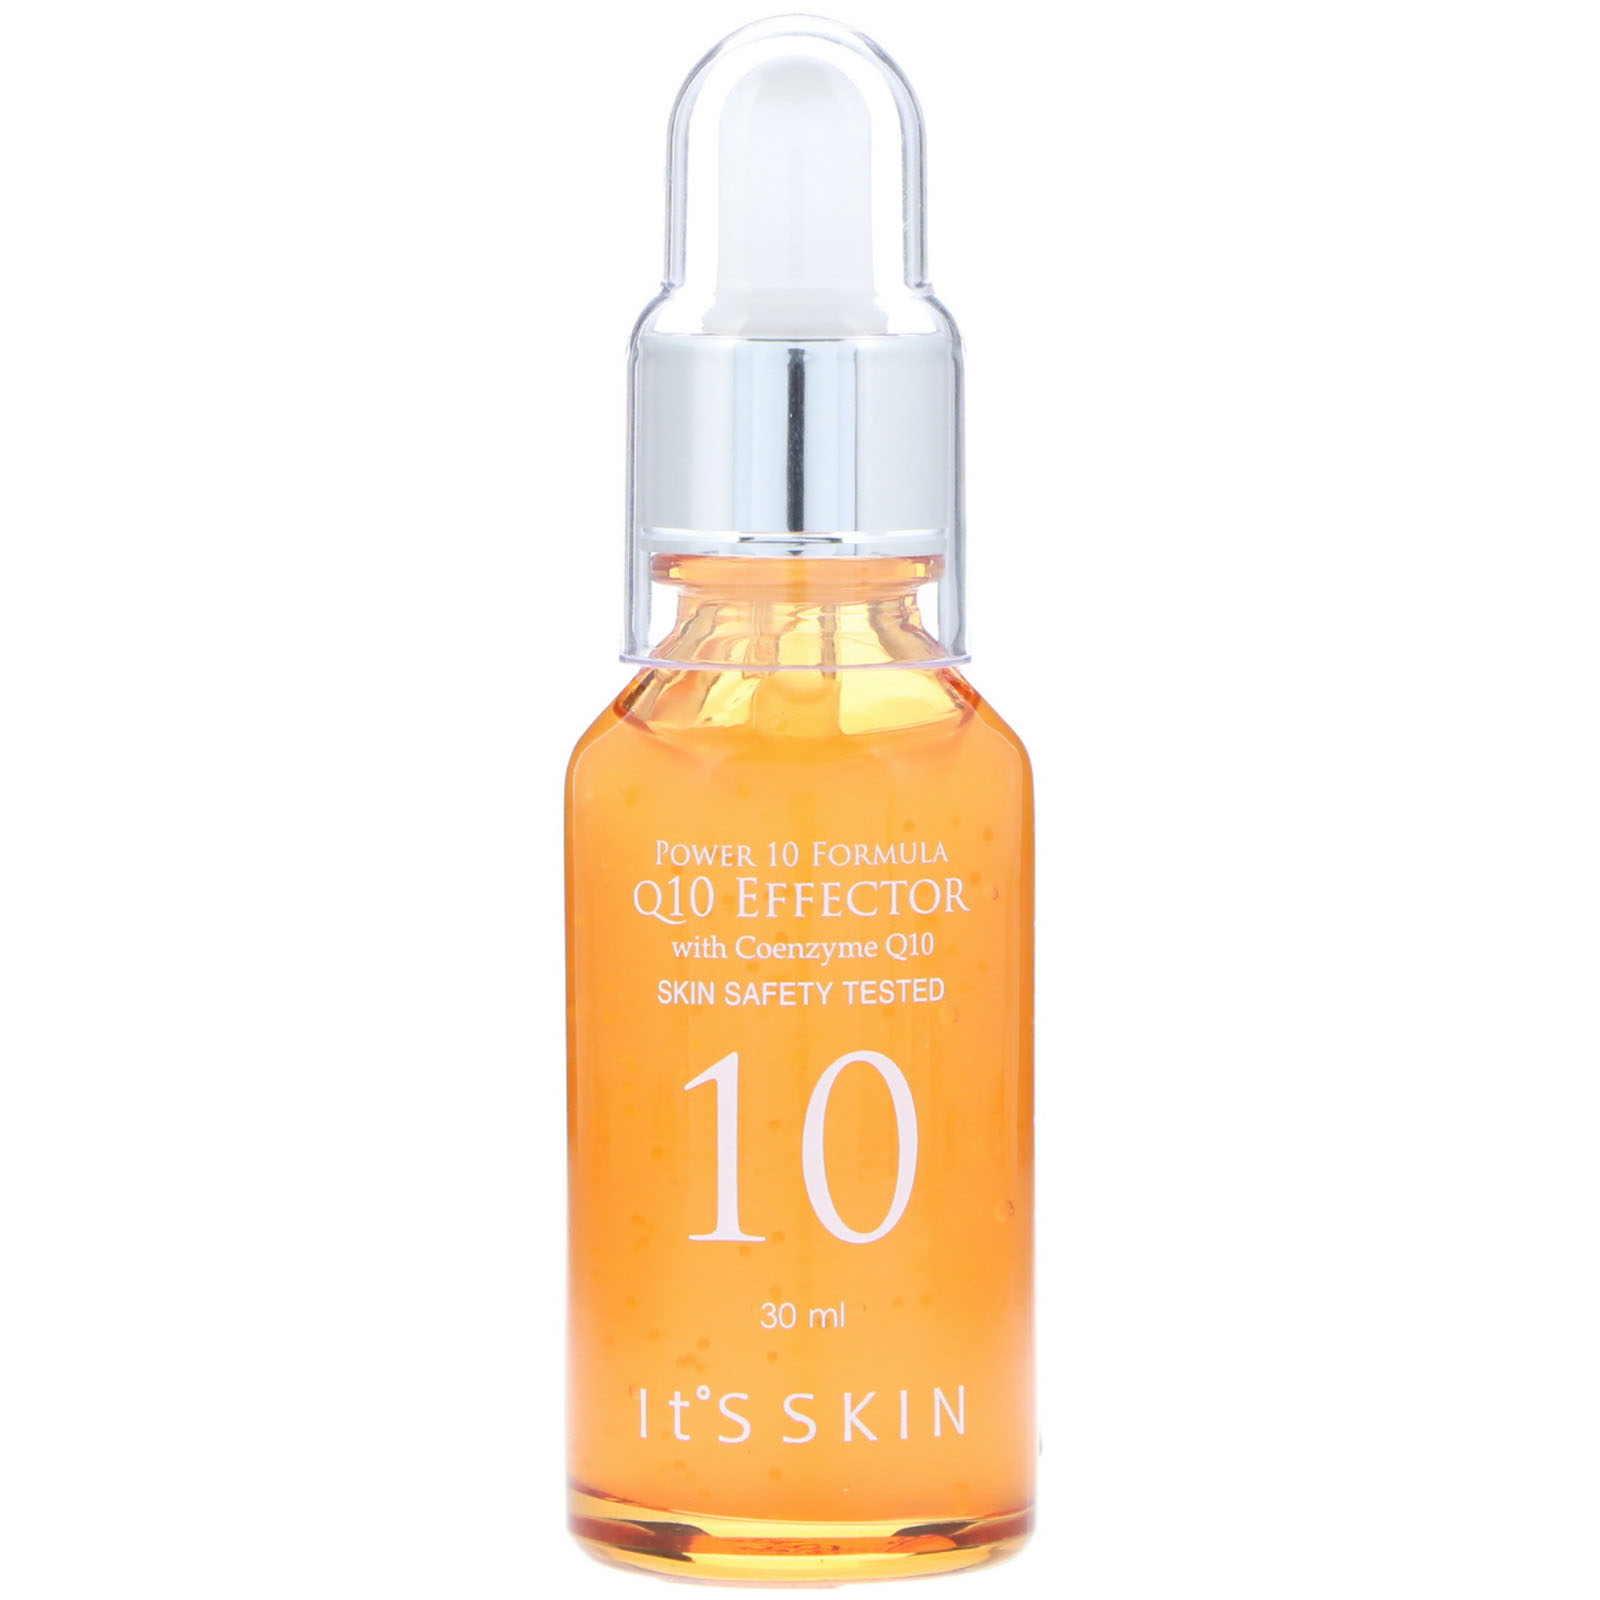 Power 10 Formula Q10 Effector by It's Skin #9